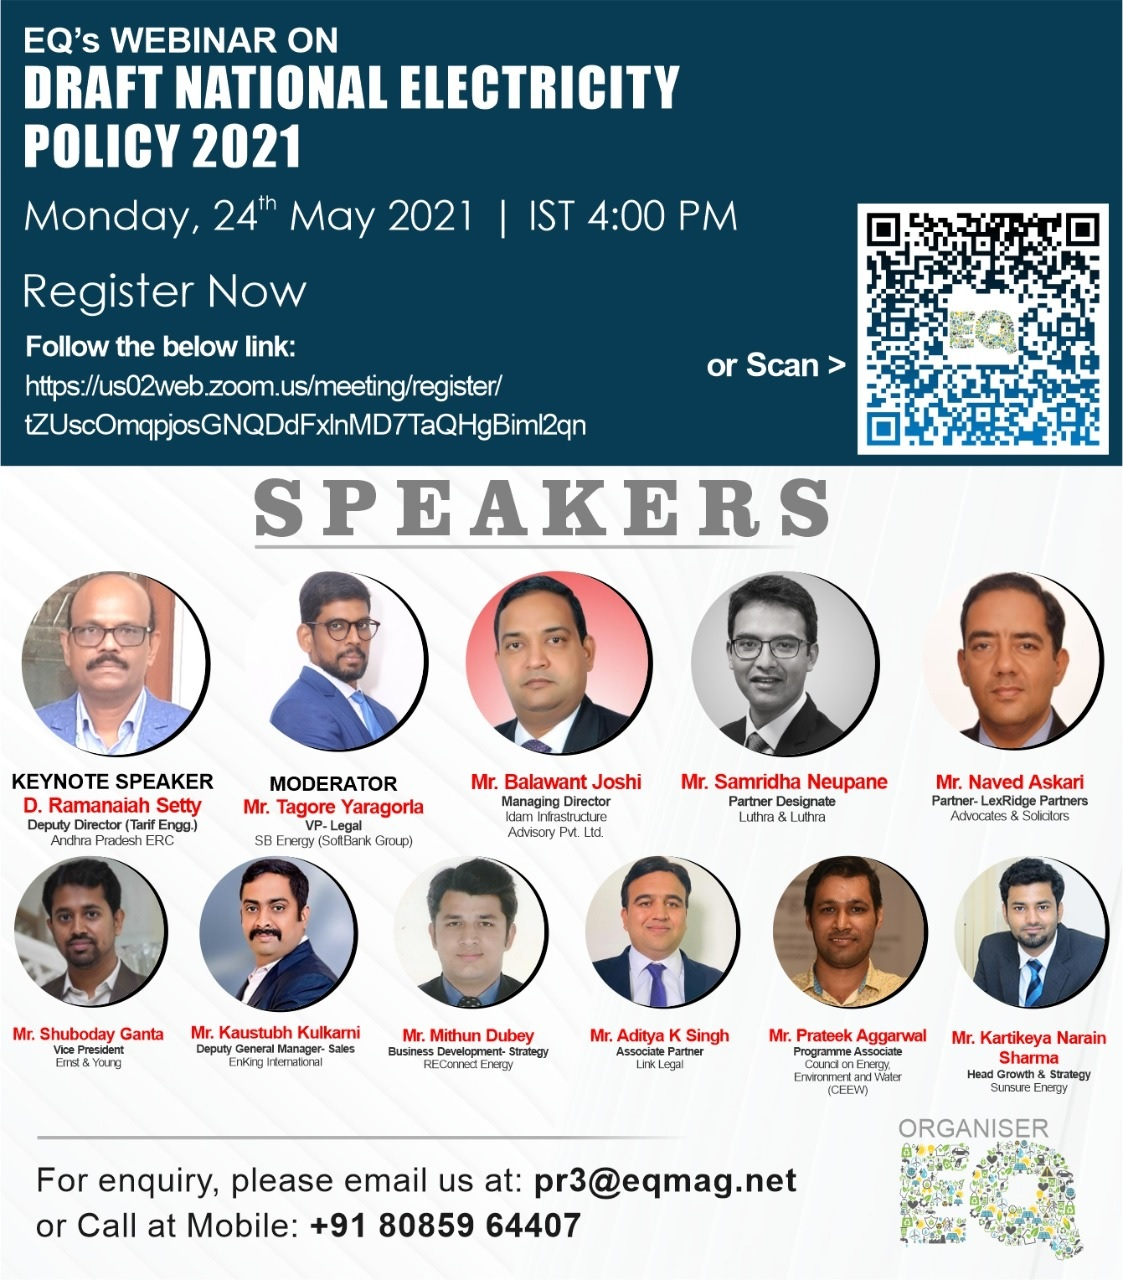 EQ Webinar on Draft National Electricity Policy Dated – 24 May 2021 (Monday) from 04:00 PM Onwards….Register Now !!!